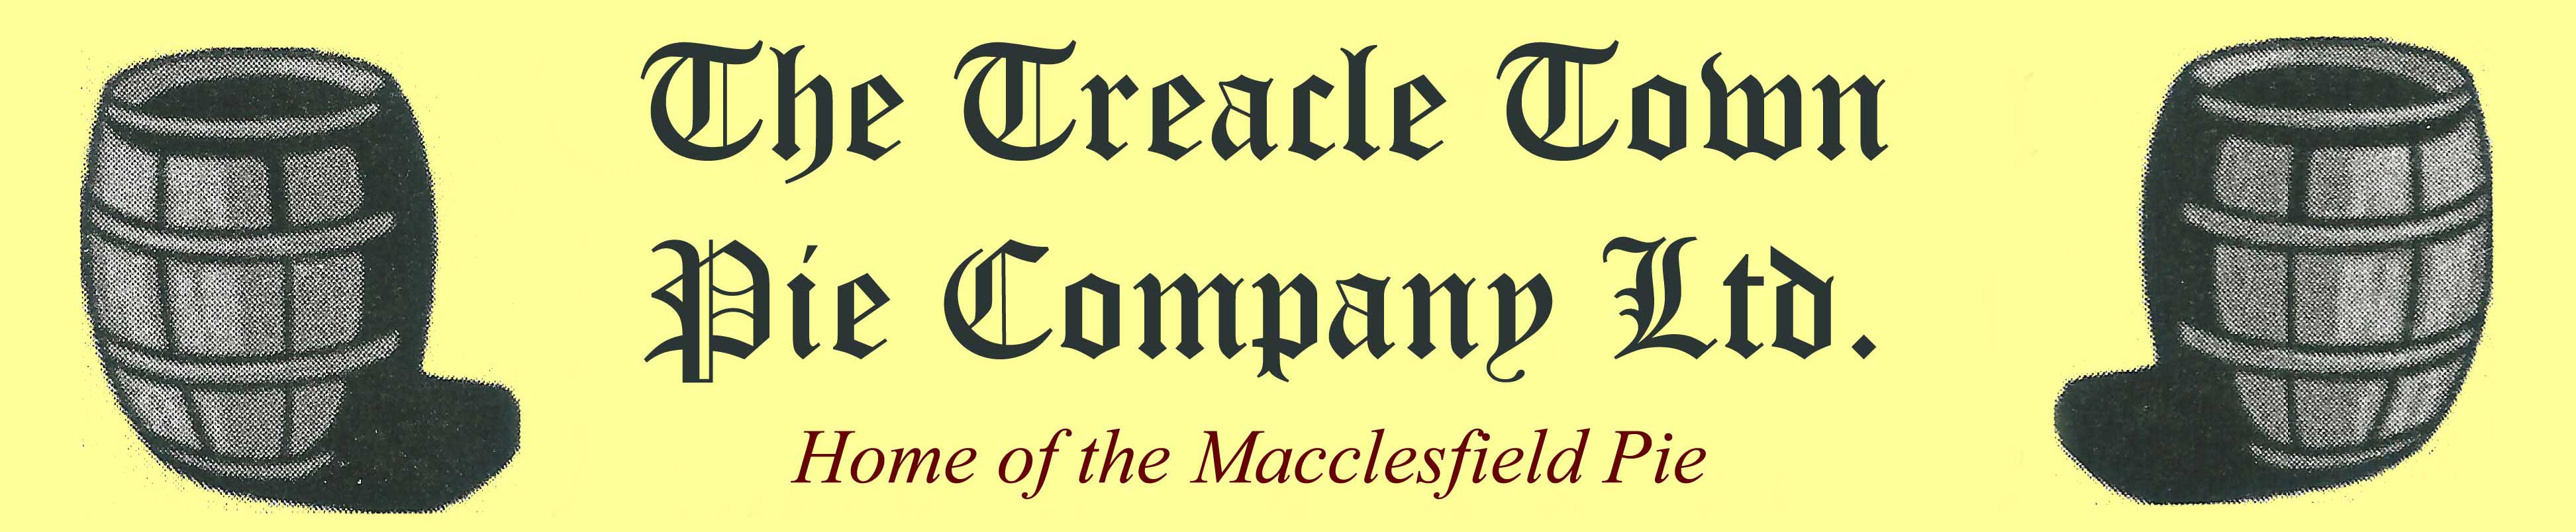 The Treacle Town Pie Company logo